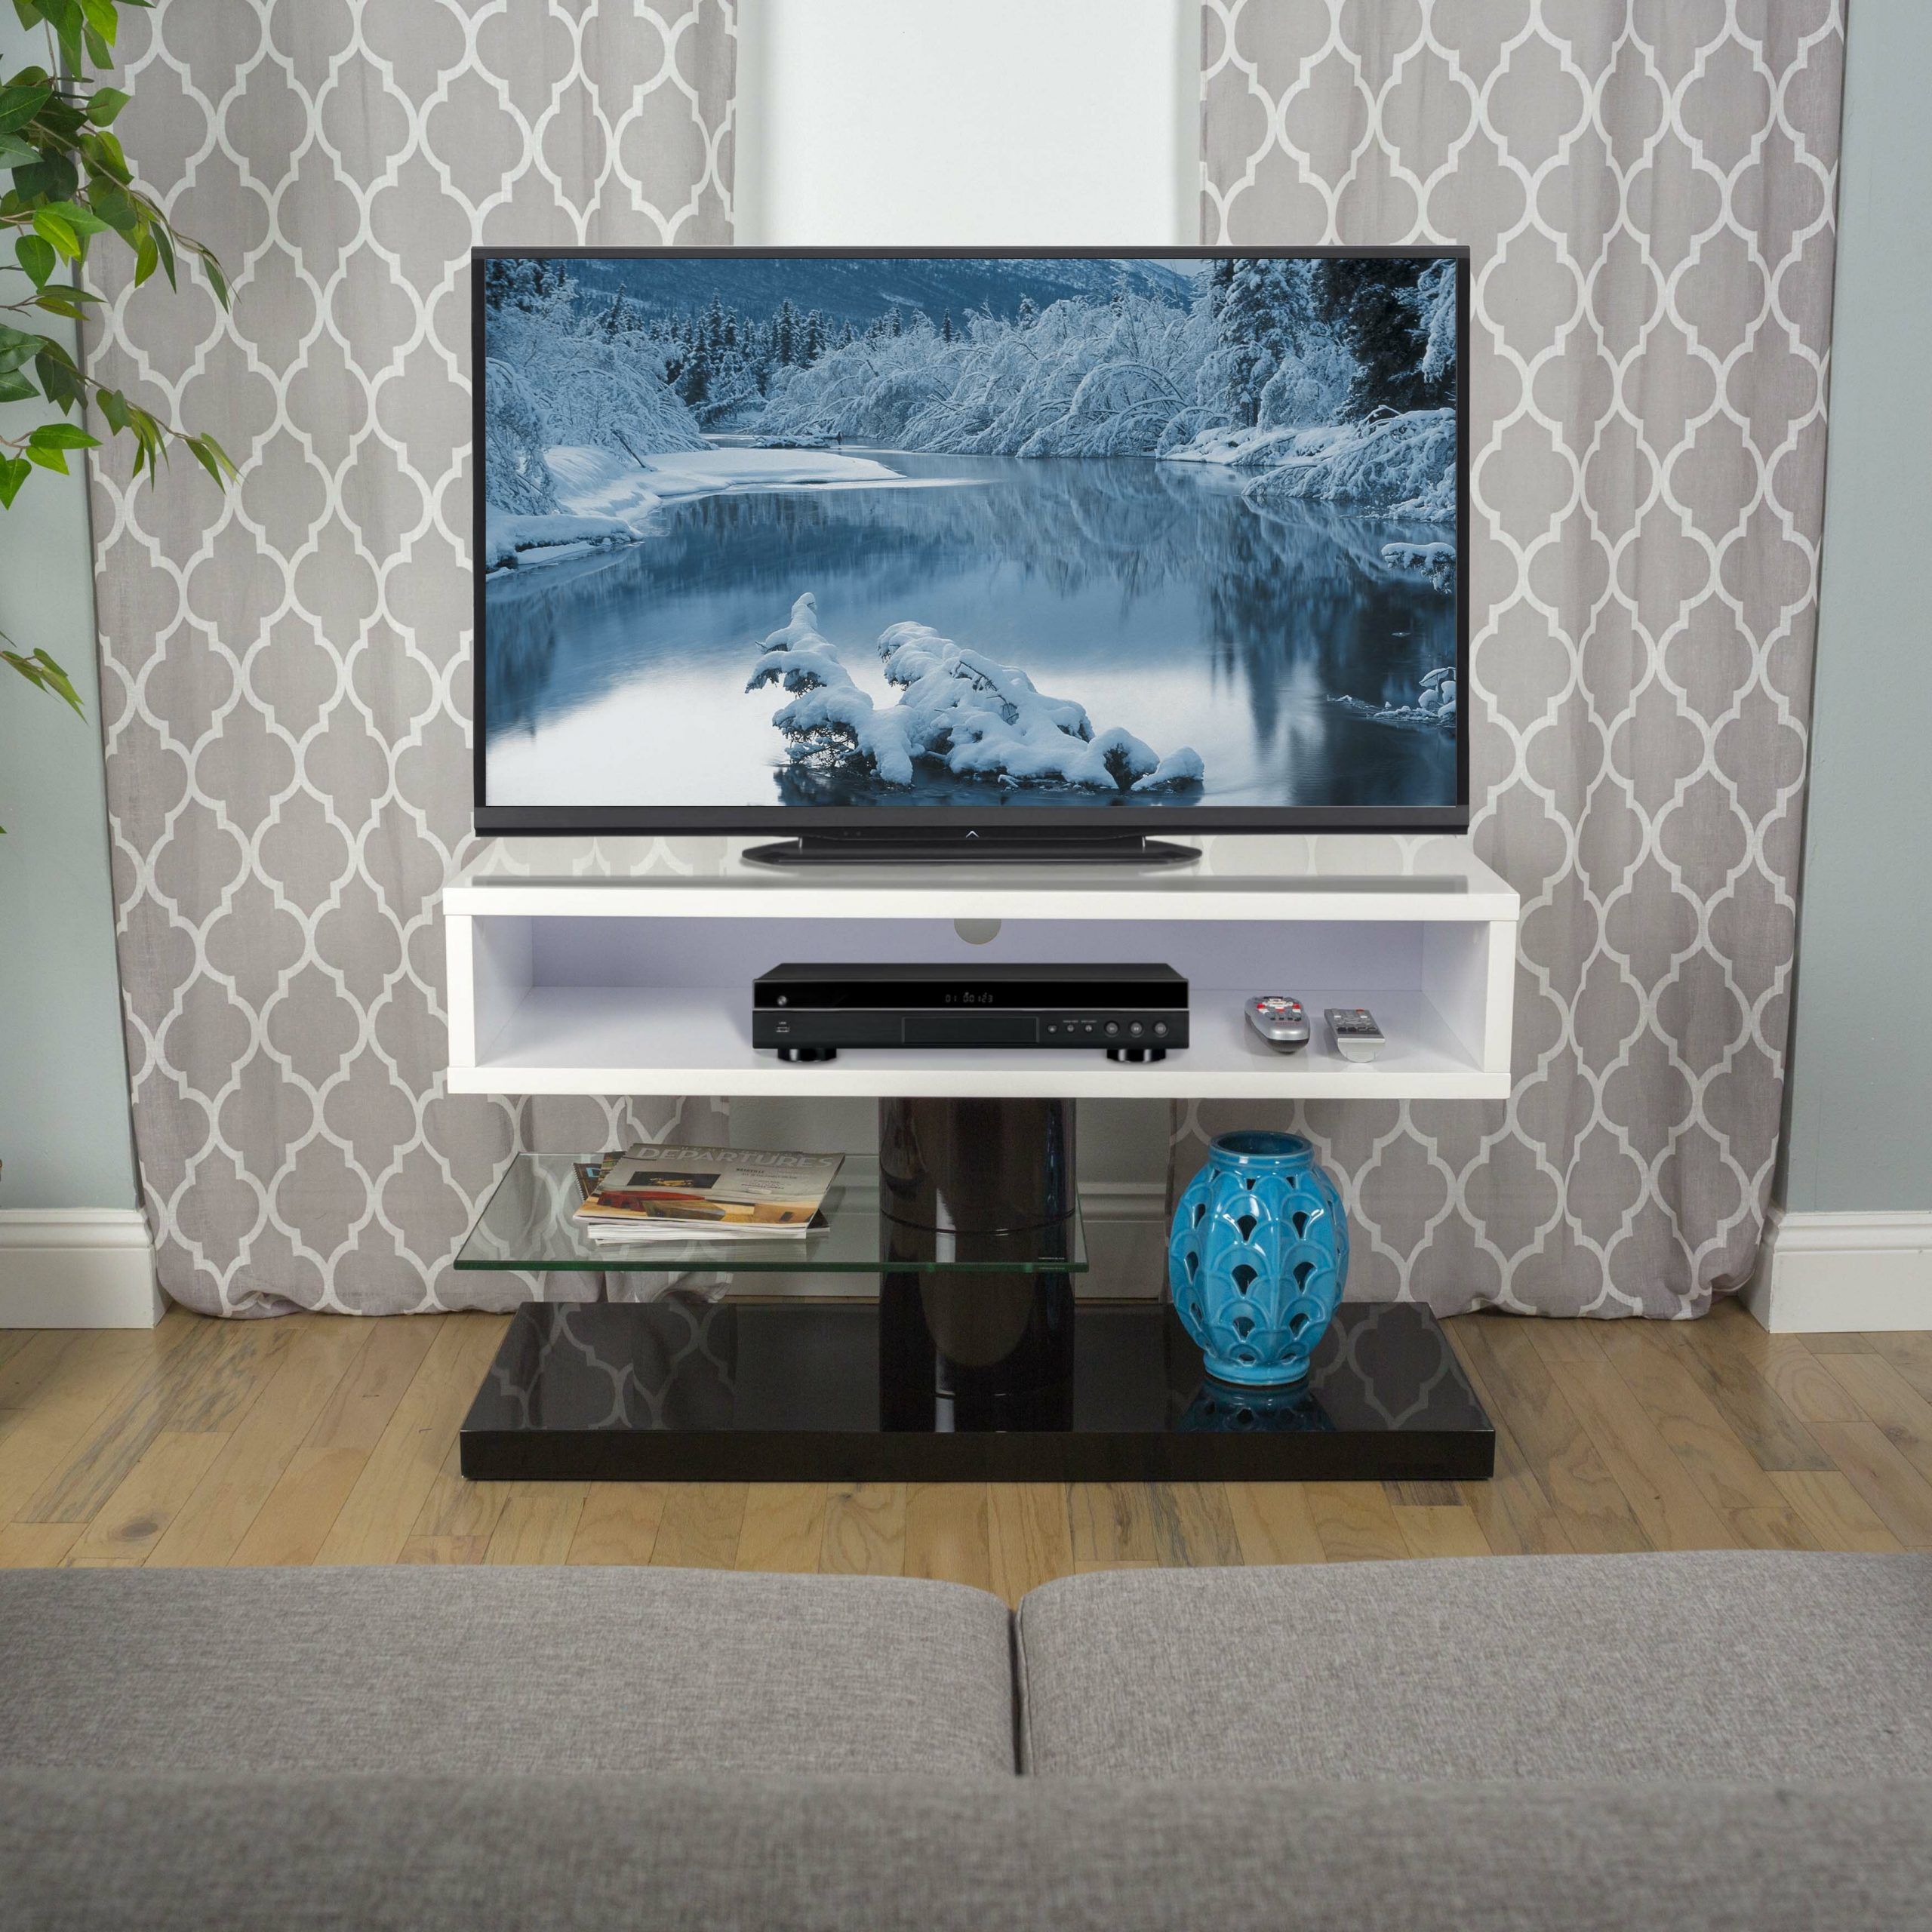 Matrix Bayern Flat Screen Tv Stand & Reviews | Wayfair Pertaining To Easel Tv Stands For Flat Screens (View 11 of 15)